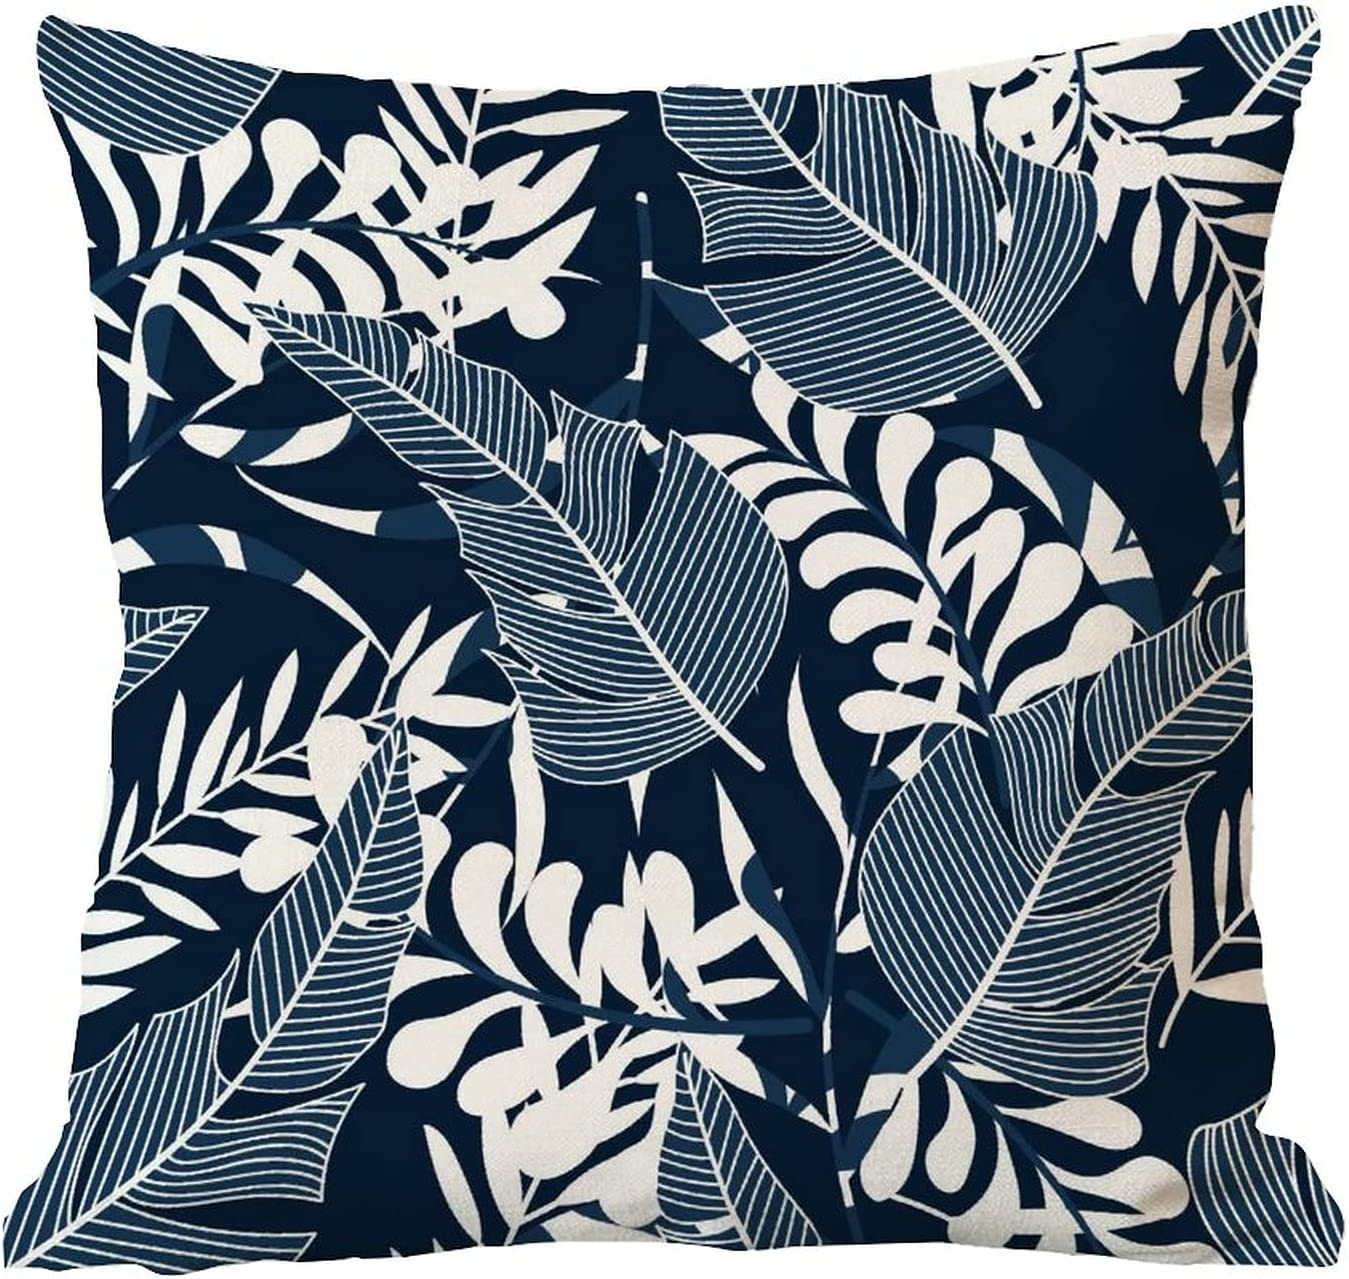 ArogGeld Tropical Bright Plants Denver Mall Leaves Throw Pillow Cove latest Outdoor